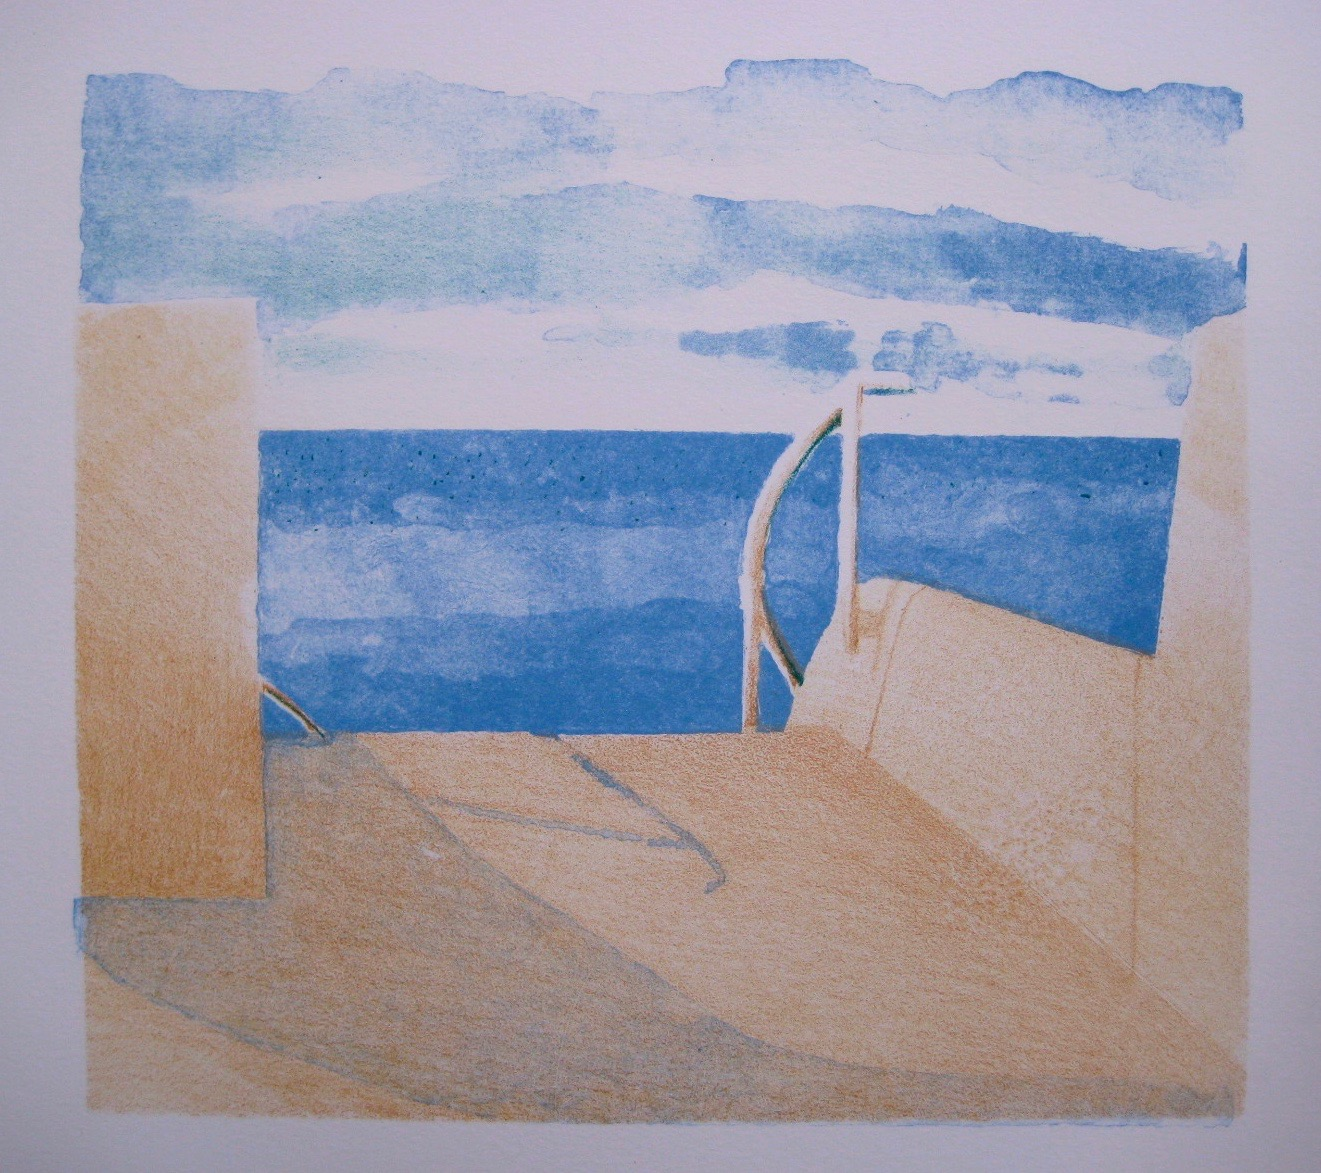 Swamis, 9 x 10 inches, Stone Lithograph, 2014